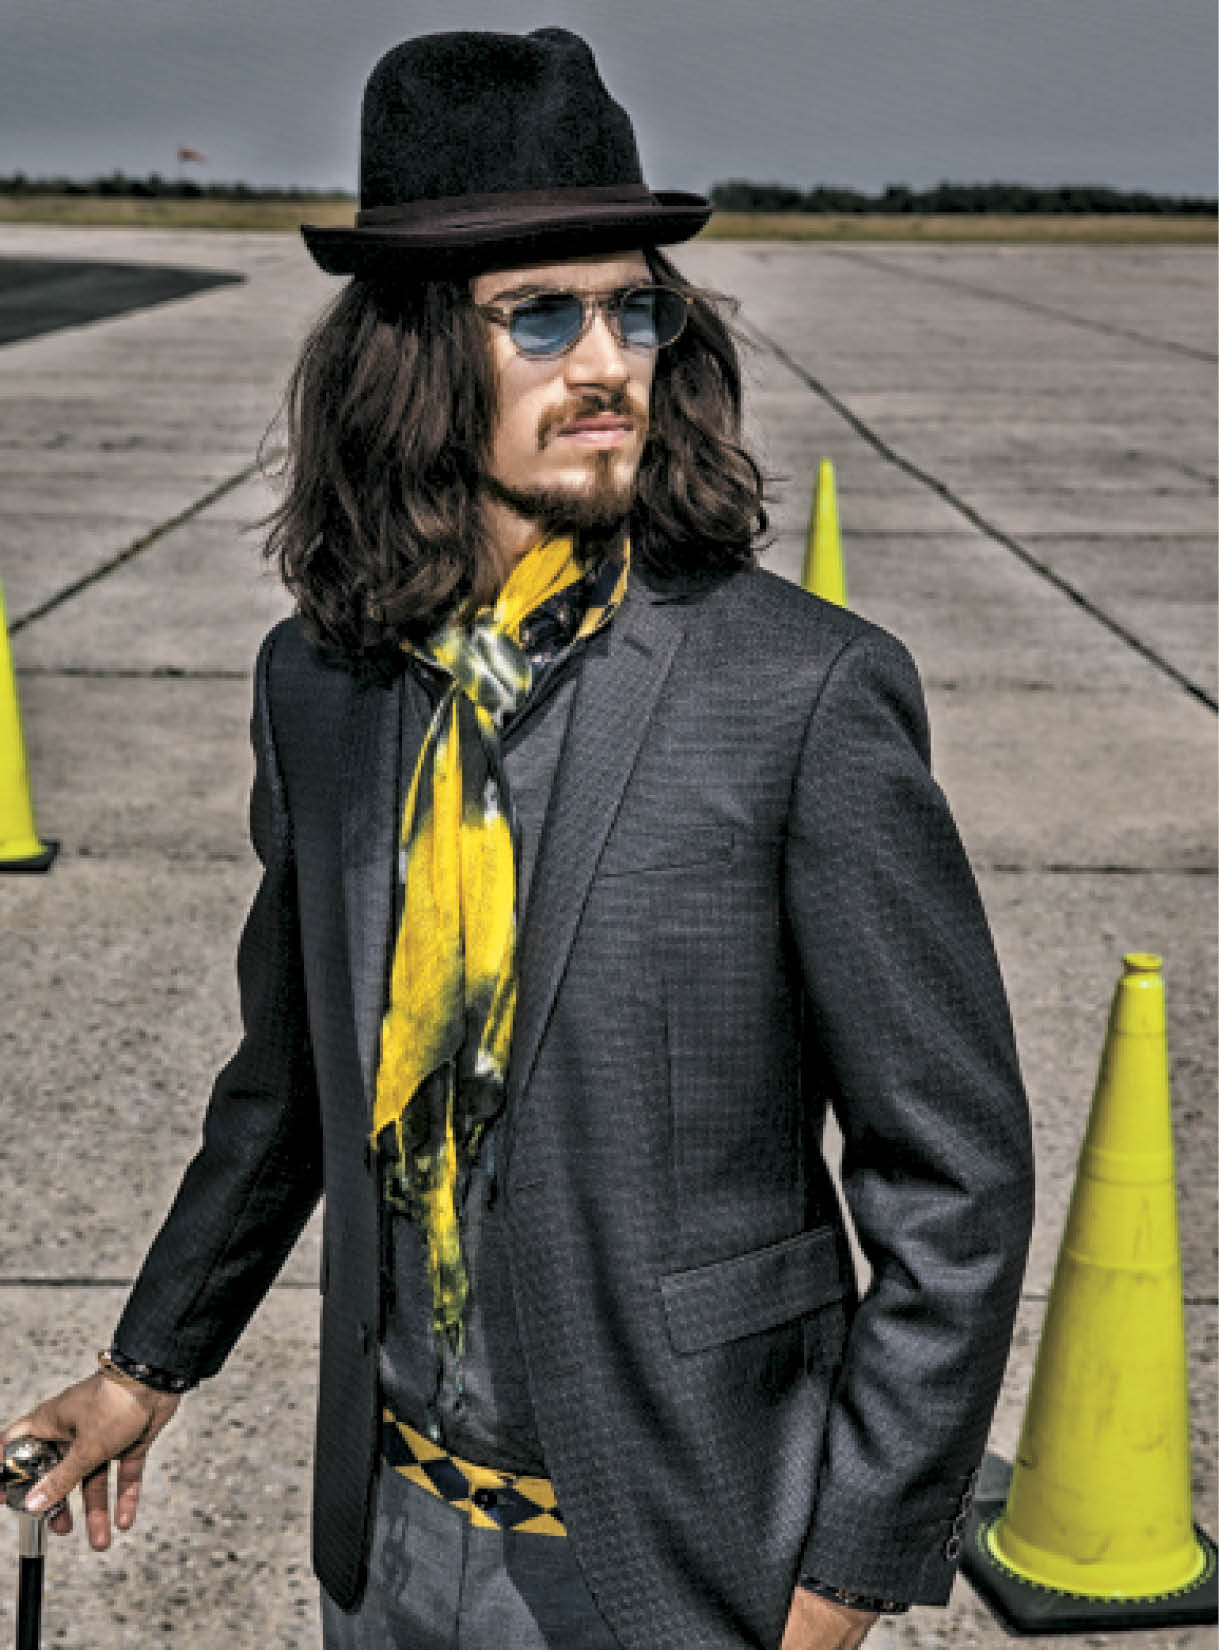 To amplify texture, Brunetti worked a light pomade into the hair, then used a diffuser to slowly dry it and enhance the natural wave pattern. Suit and top: Moschino; scarf:  Etro; belt: H.E. by Mango; glasses: Vintage Matsuda; cane: Asprey; hat: Bar III